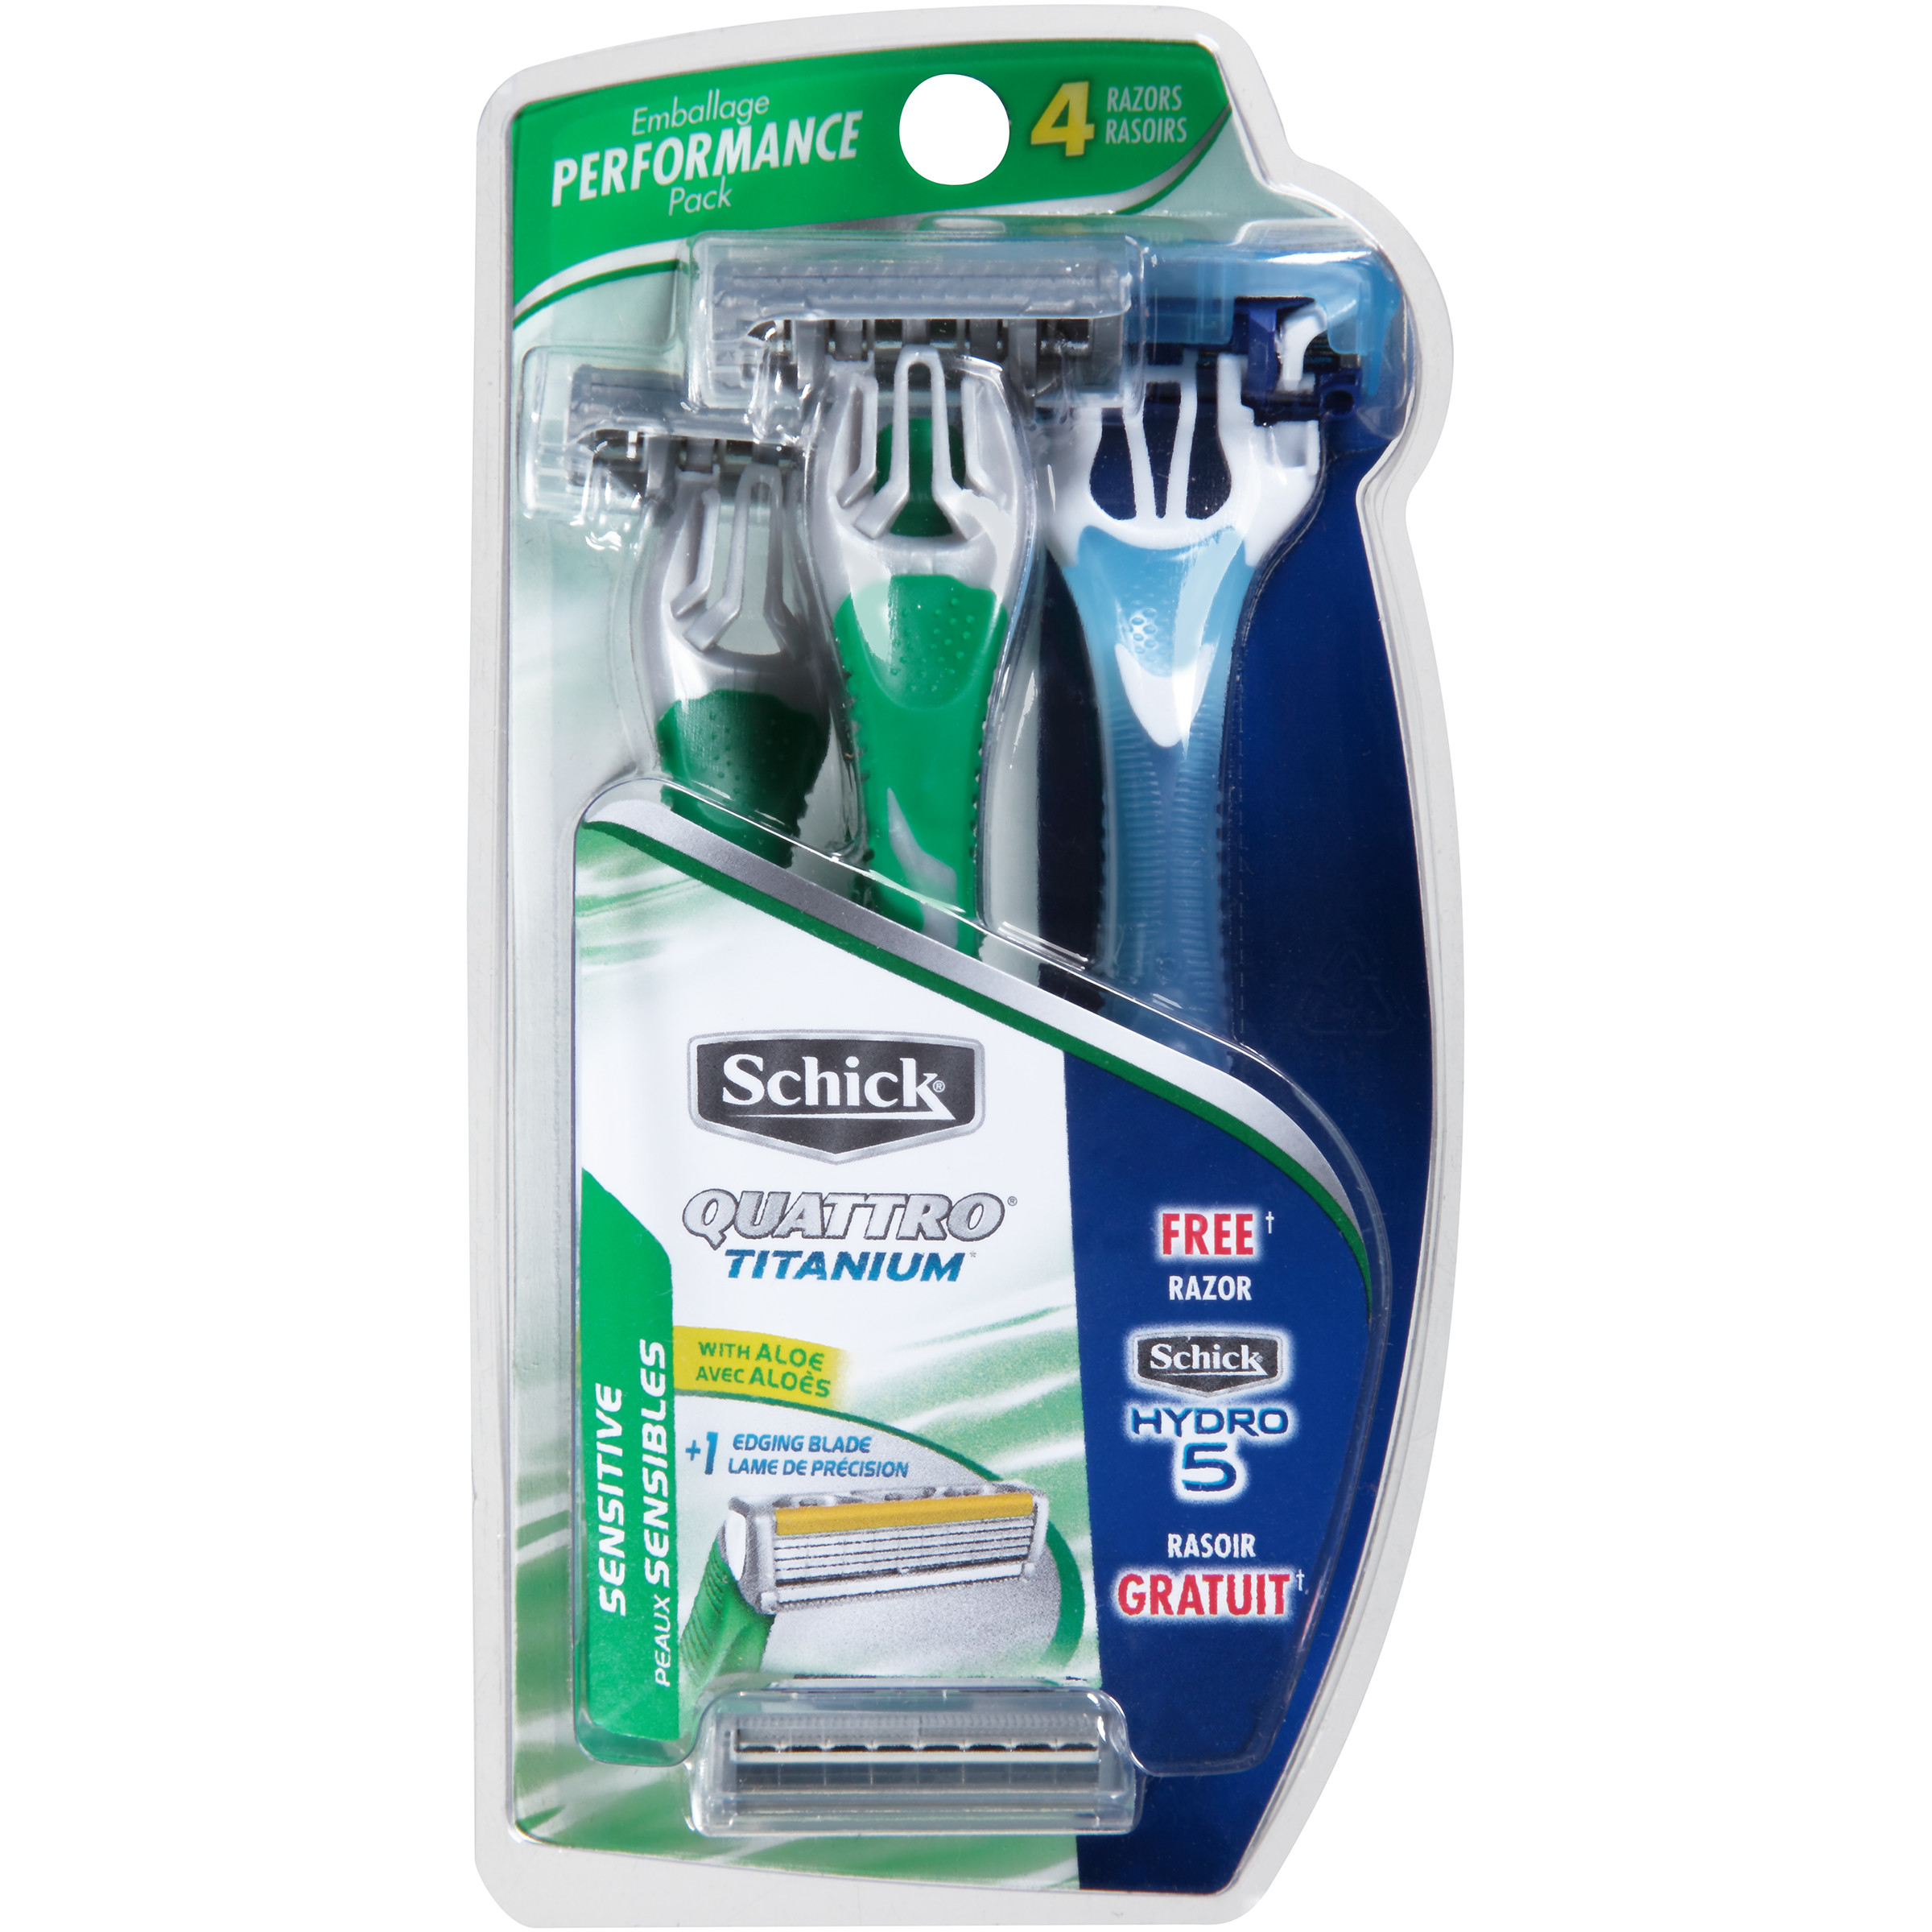 Schick Quattro Titanium For Men Sensitive Disposable Razor - 3 Count Plus 1 Hydro 5 Men's Disposable Razor